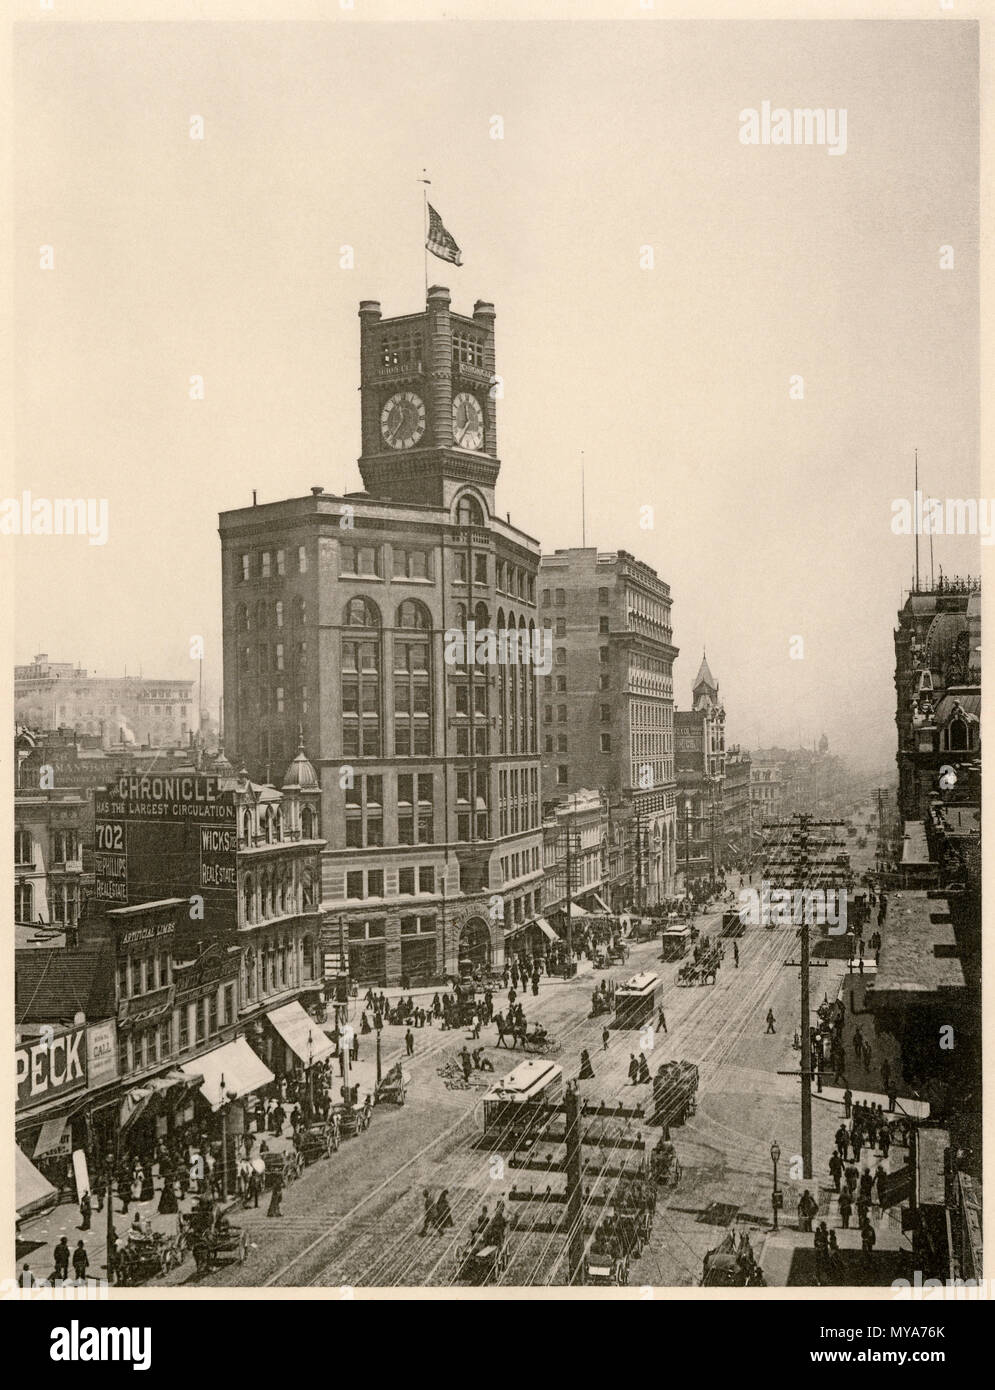 Market Street in San Francisco, showing the Chronicle and Crocker buildings and cable cars, 1890s. Albertype (photograph) - Stock Image